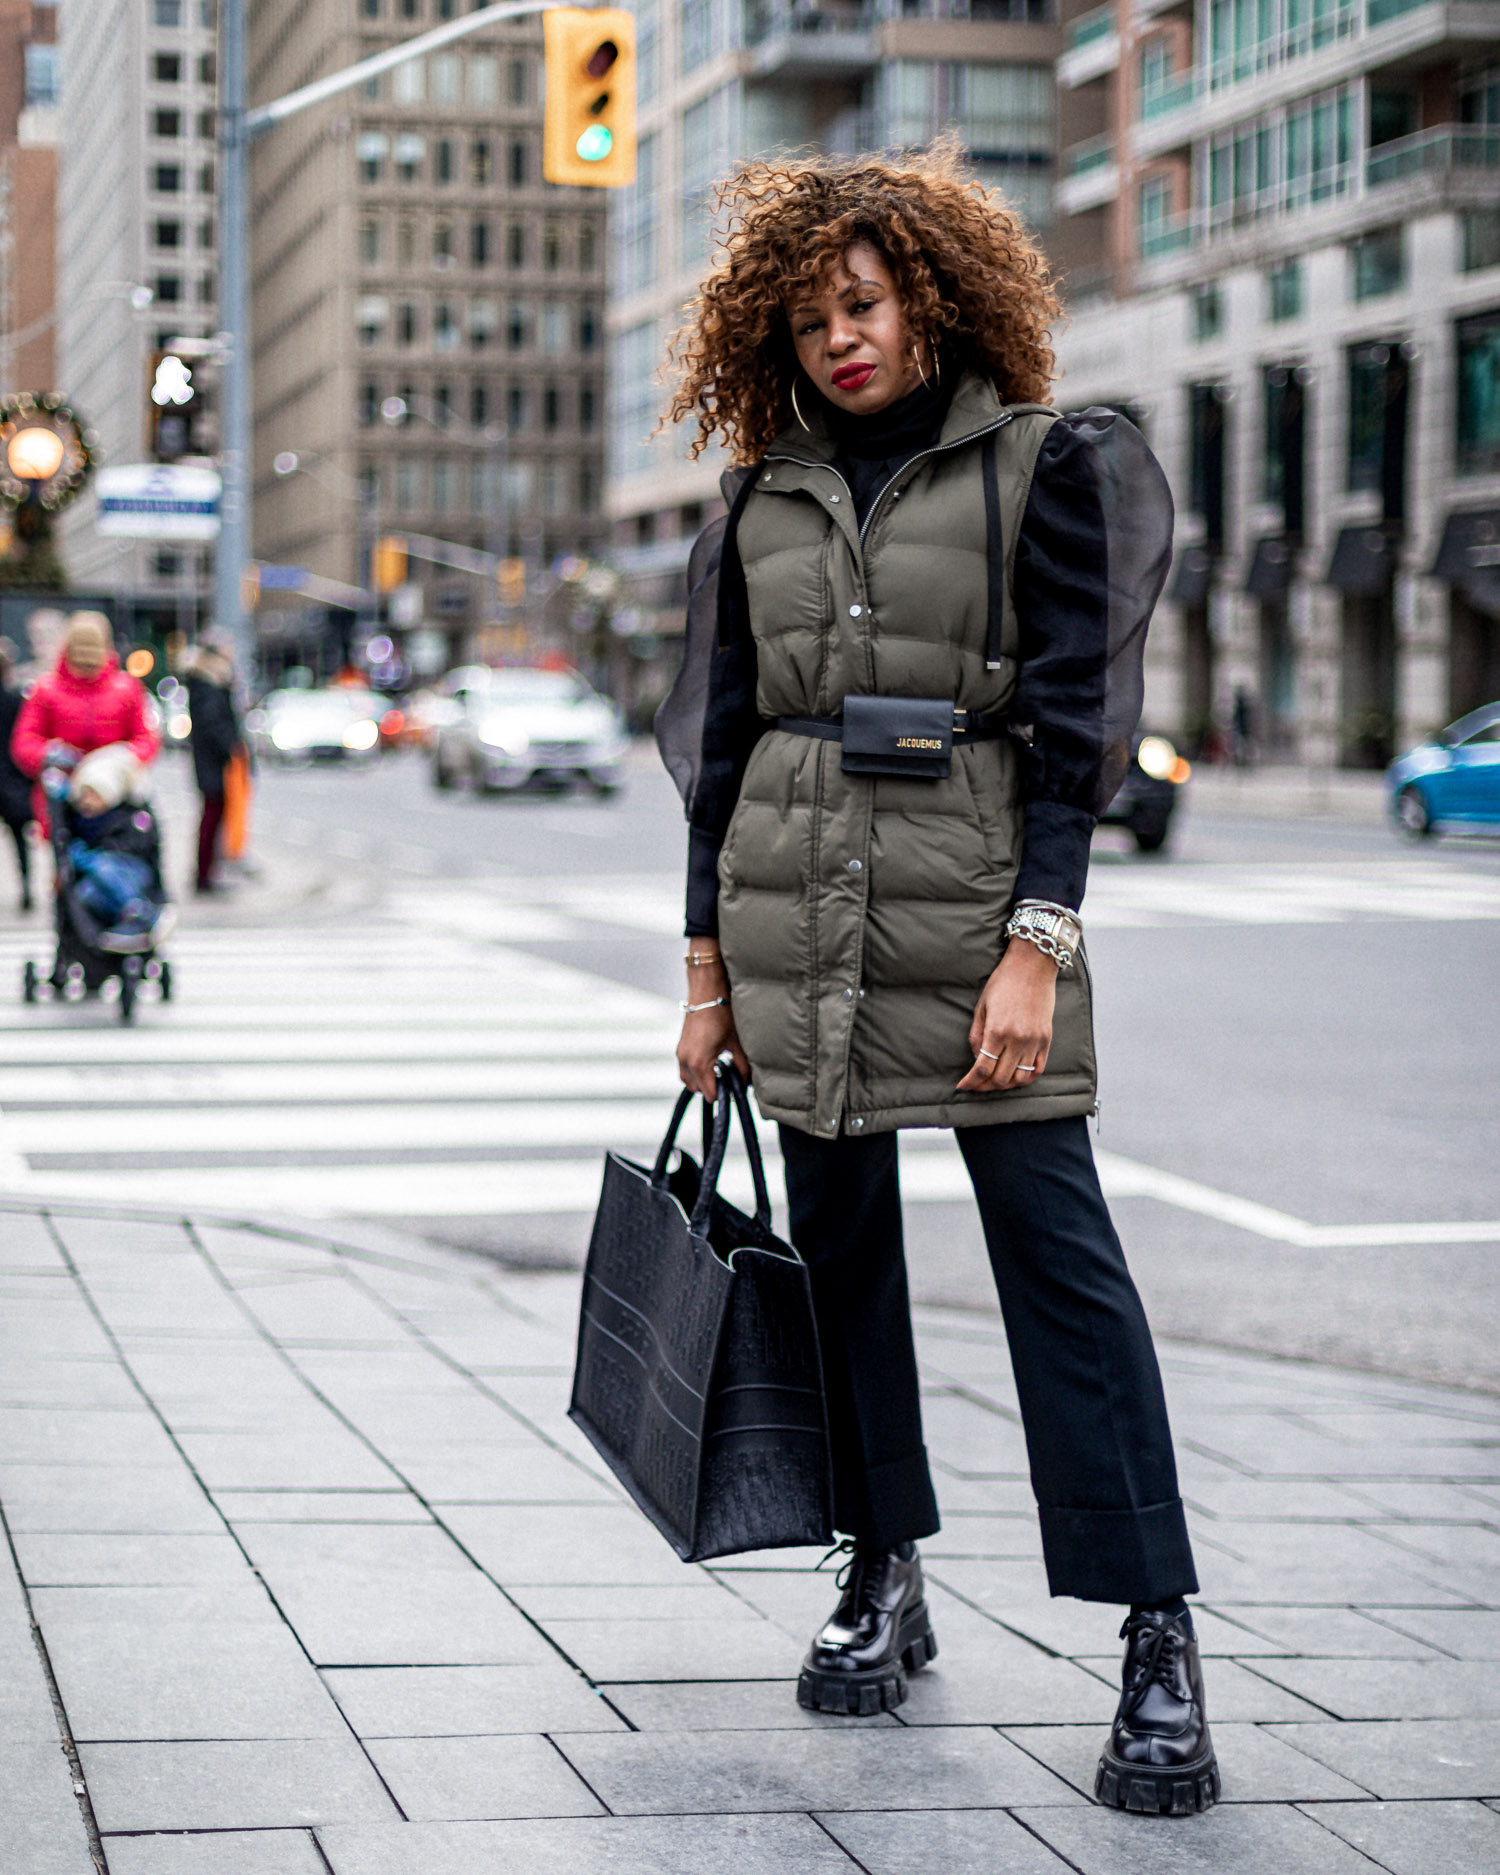 atlanta blogger wearing sleeveless puffer coat and prada creepers in toronto, dior book bag, crop pants, black pants, long vest, how to style a long vest, puffer vest, how to style a puffer vest, winter coats, toronto street style, coat trends, coat styles, top coats in 2020, coats to buy, what coats to buy in 2020